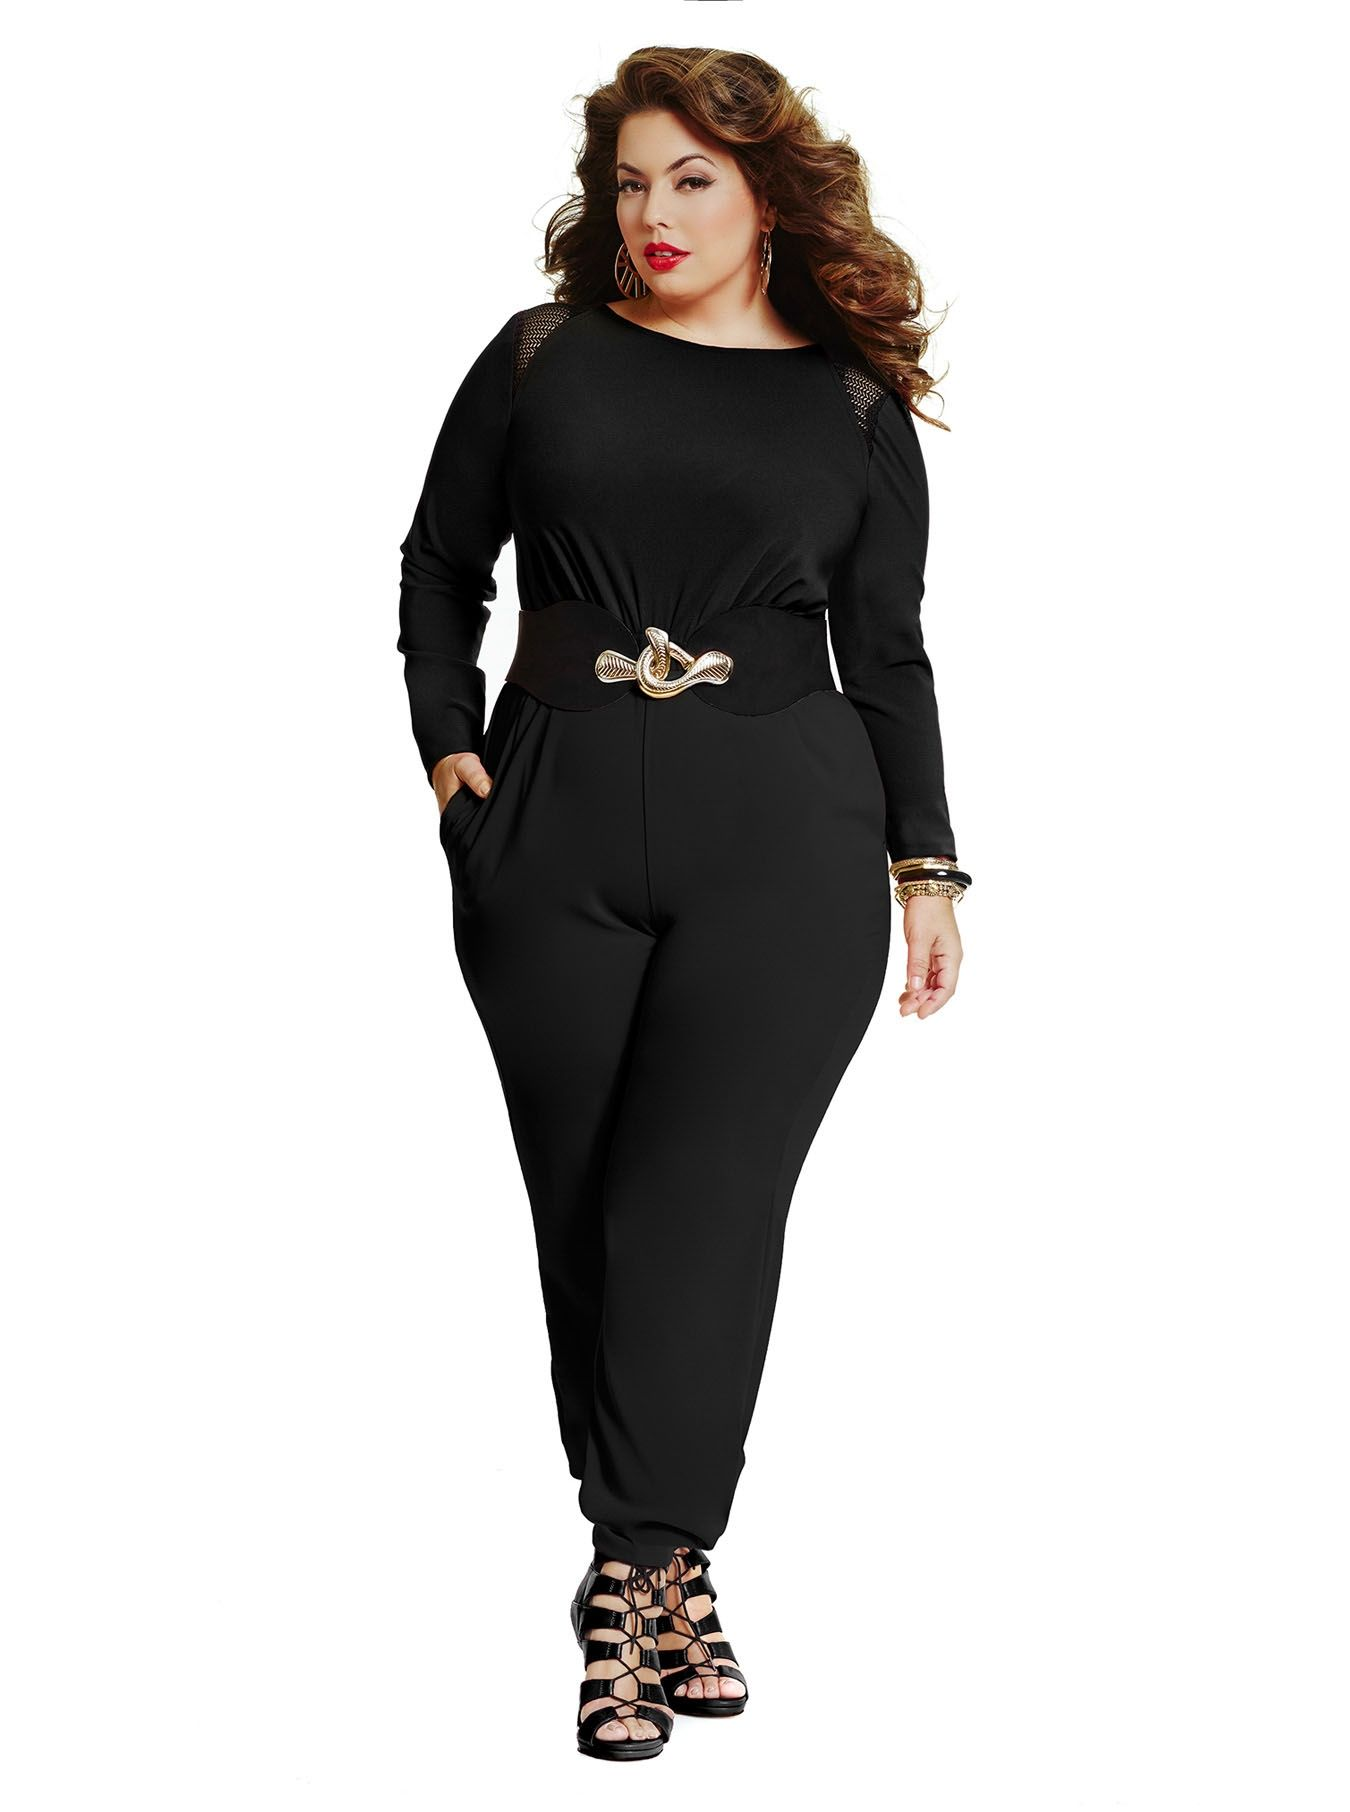 Find great deals on eBay for Plus Size Jumper in Elegant Dresses for Women. Shop with confidence.